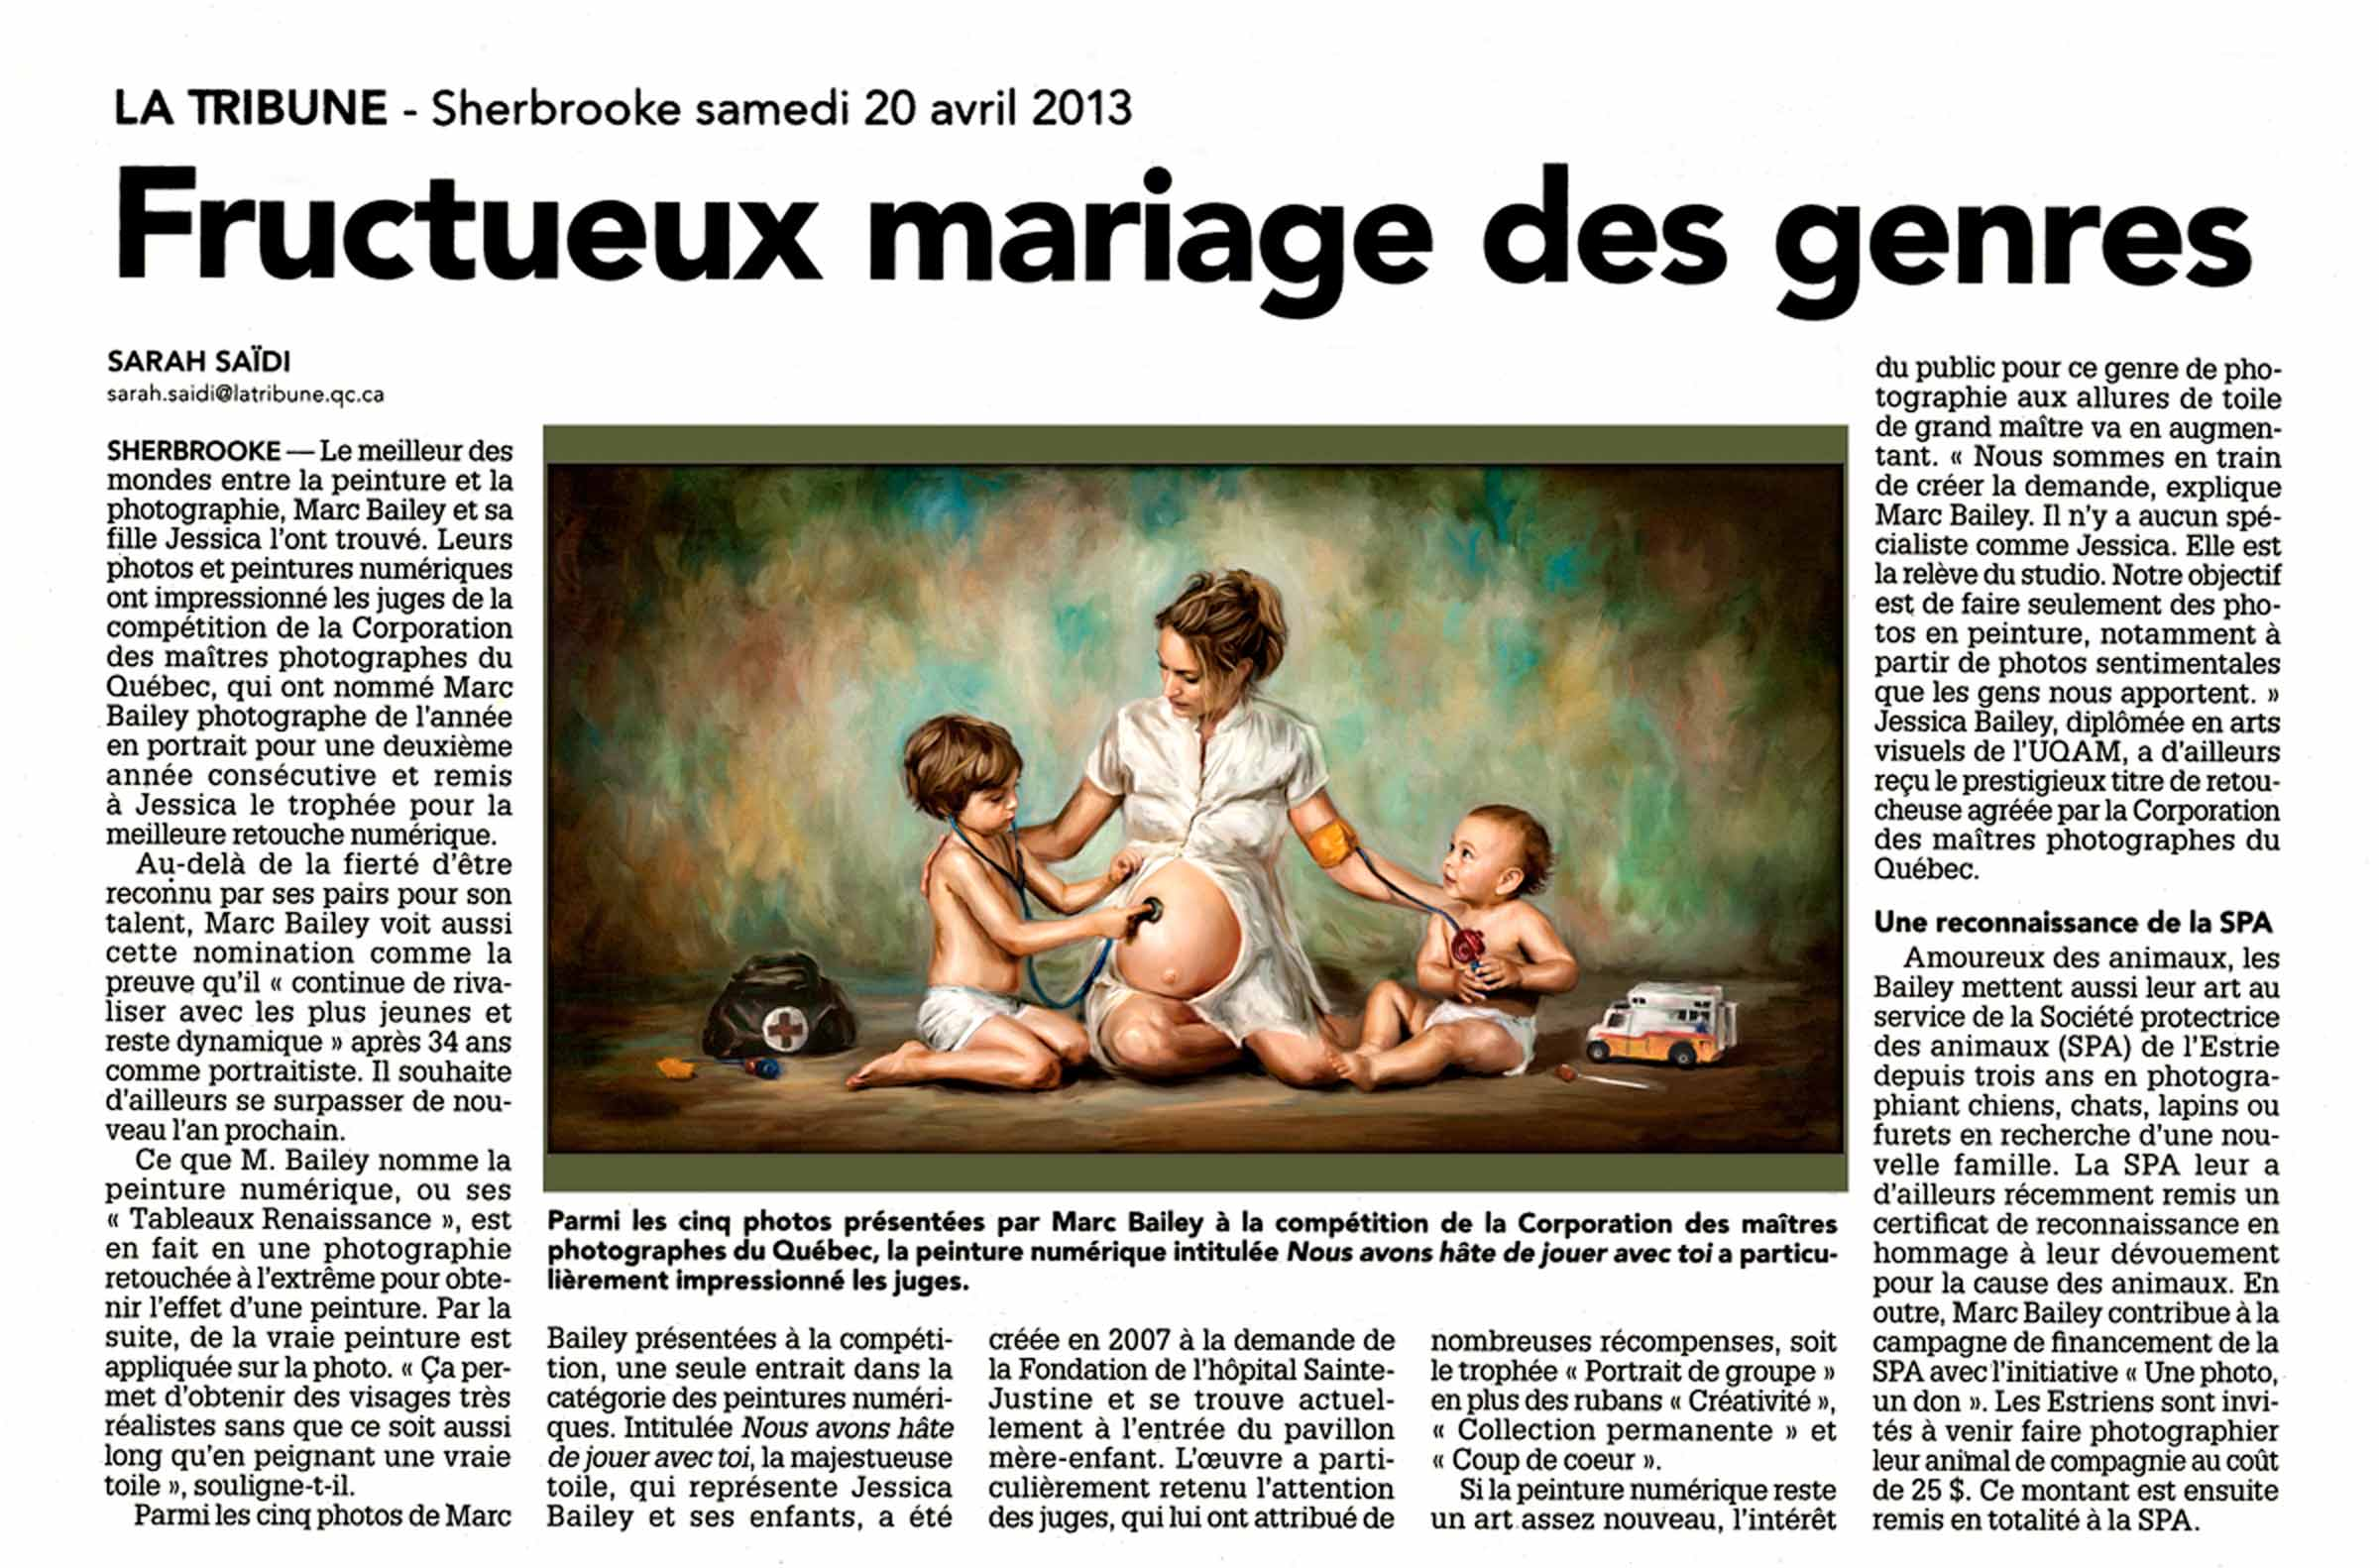 Article journal La Tribune Photographe Sherbrooke Marc Bailey